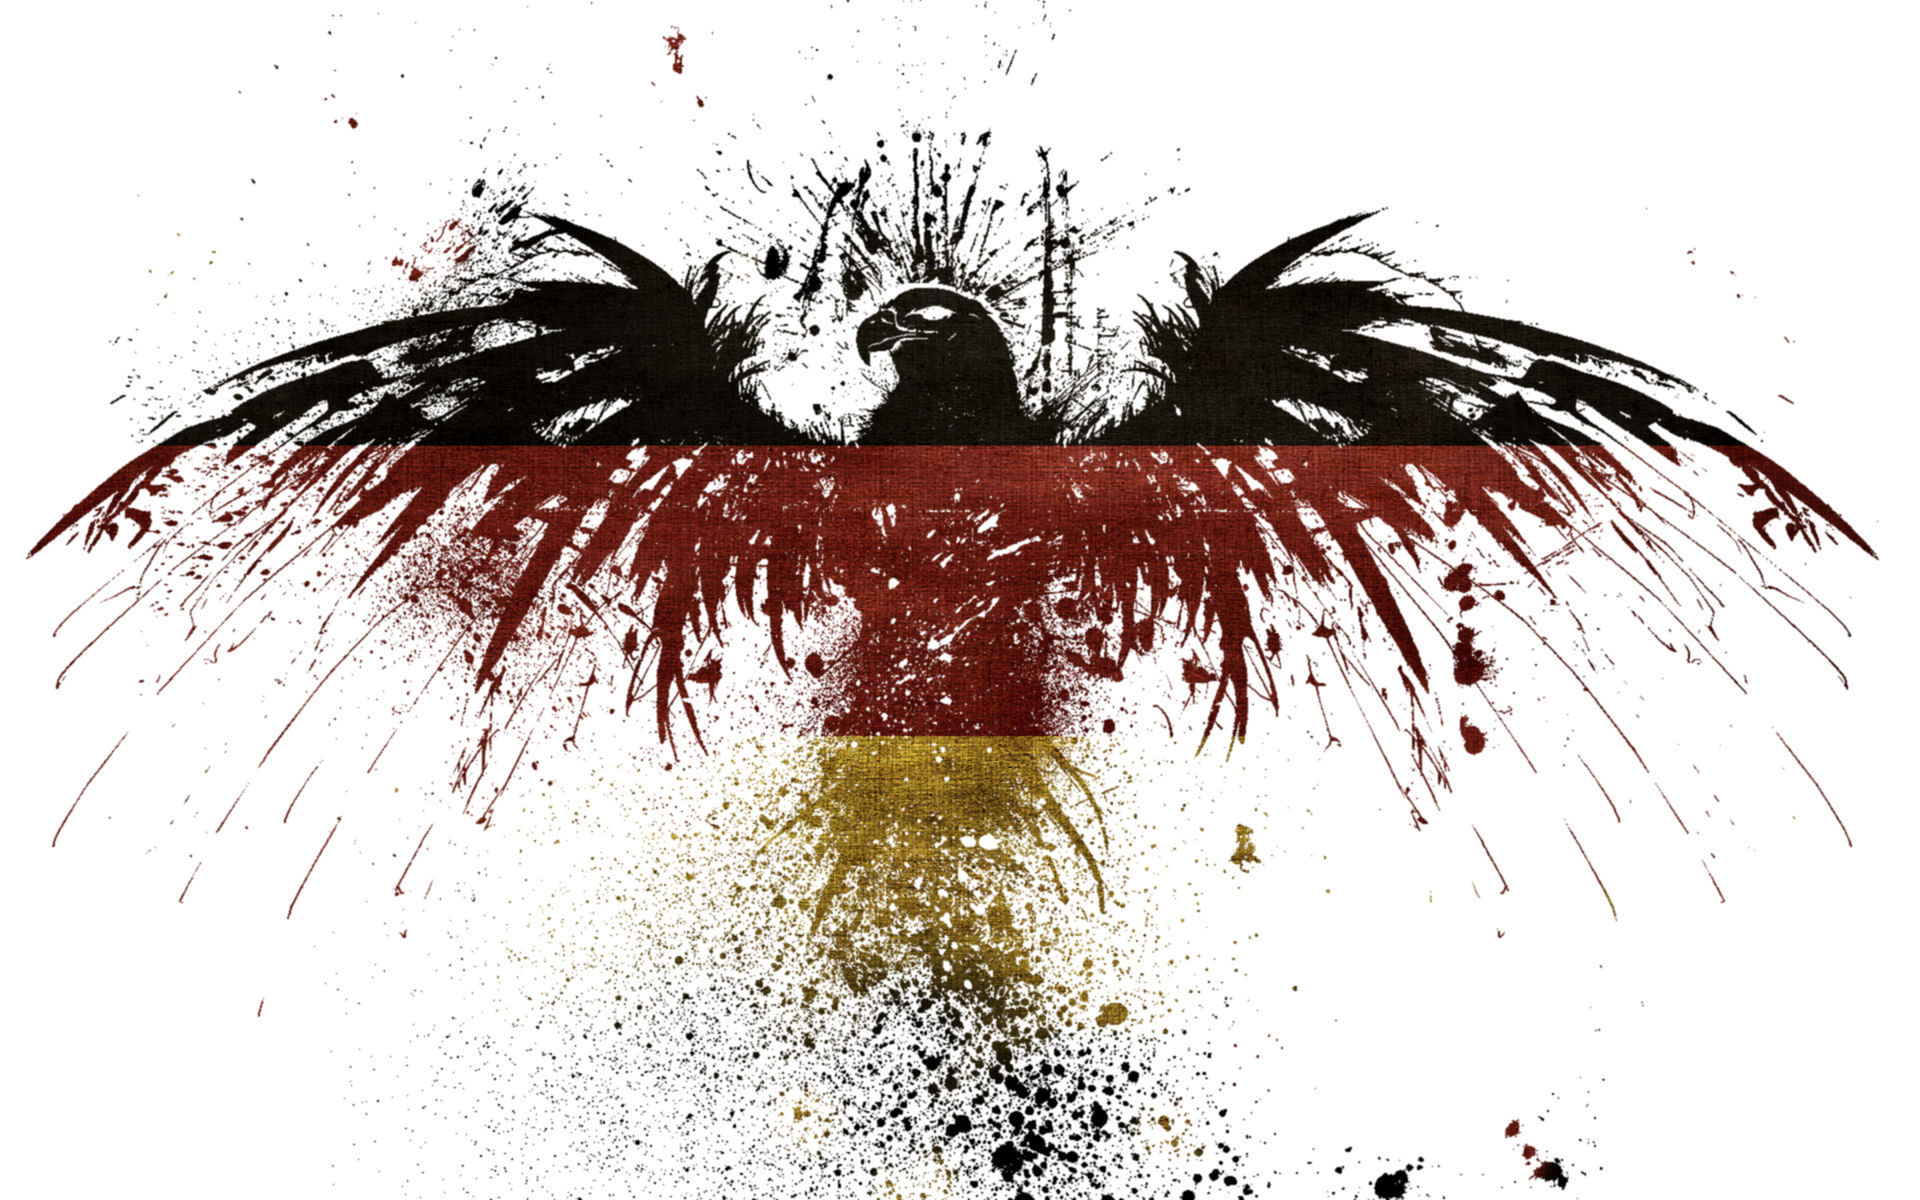 german eagle wallpaper - photo #21